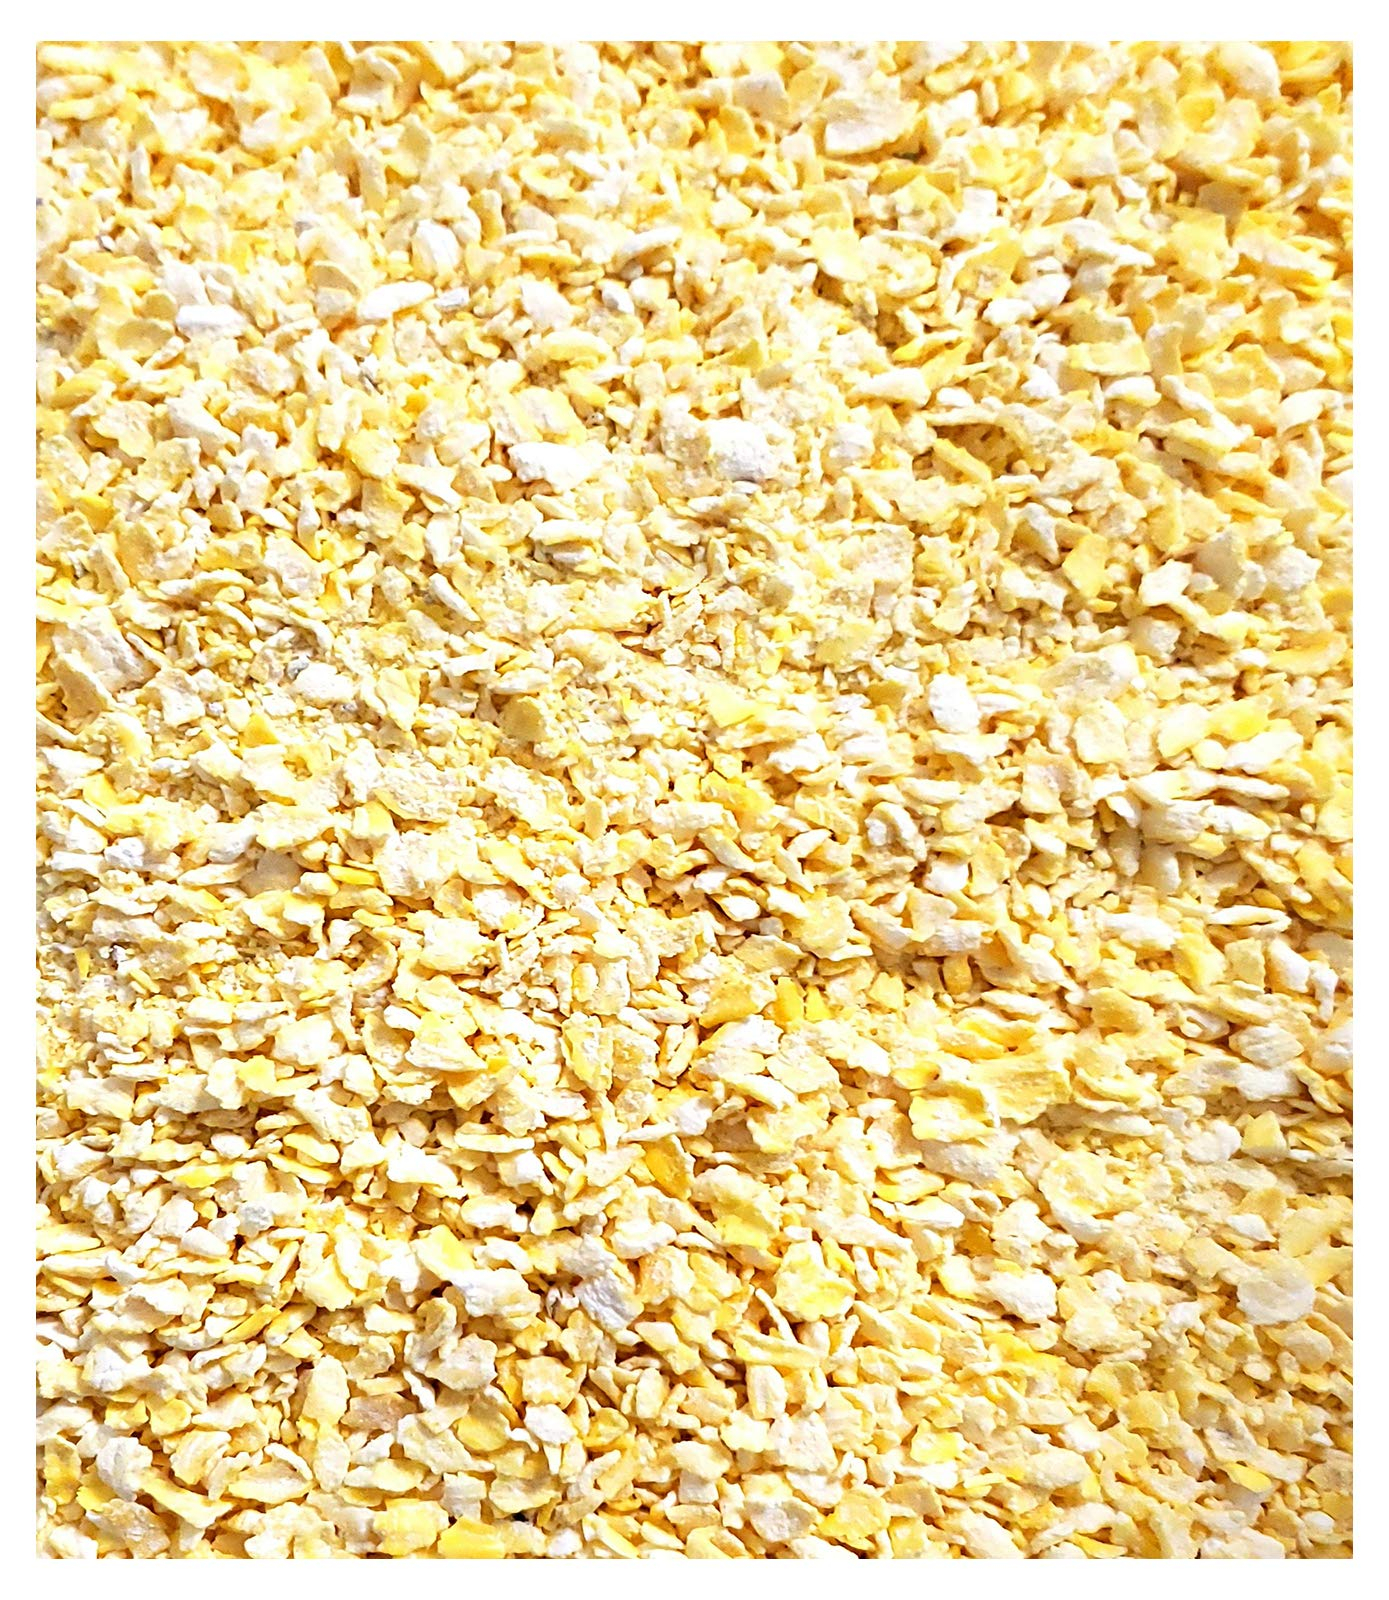 Brewmaster - AJ10E Flaked Corn (Maize) - 5 lb Bag